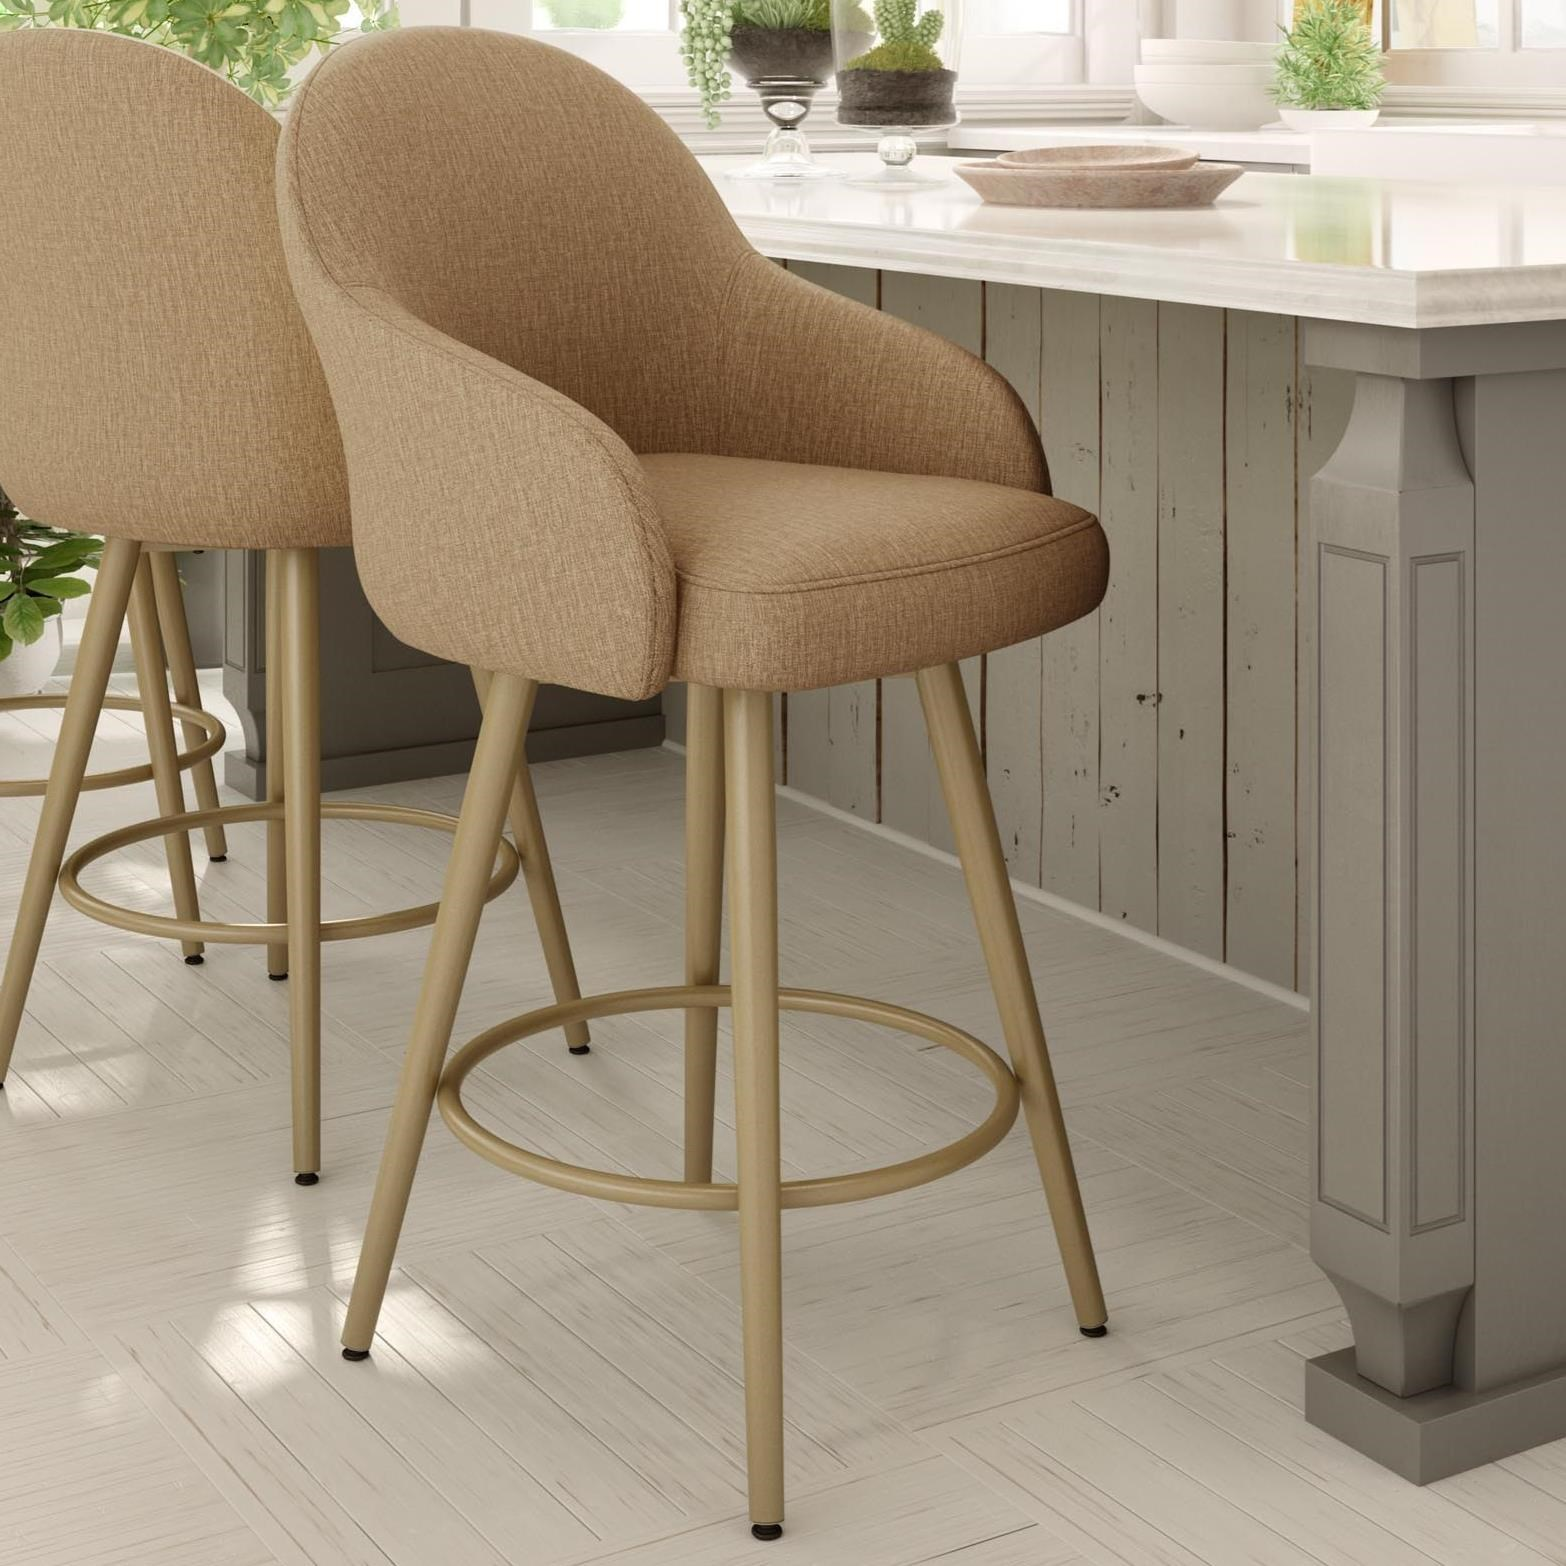 "Boudoir 26"" Weston Swivel Counter Stool by Amisco at Jordan's Home Furnishings"